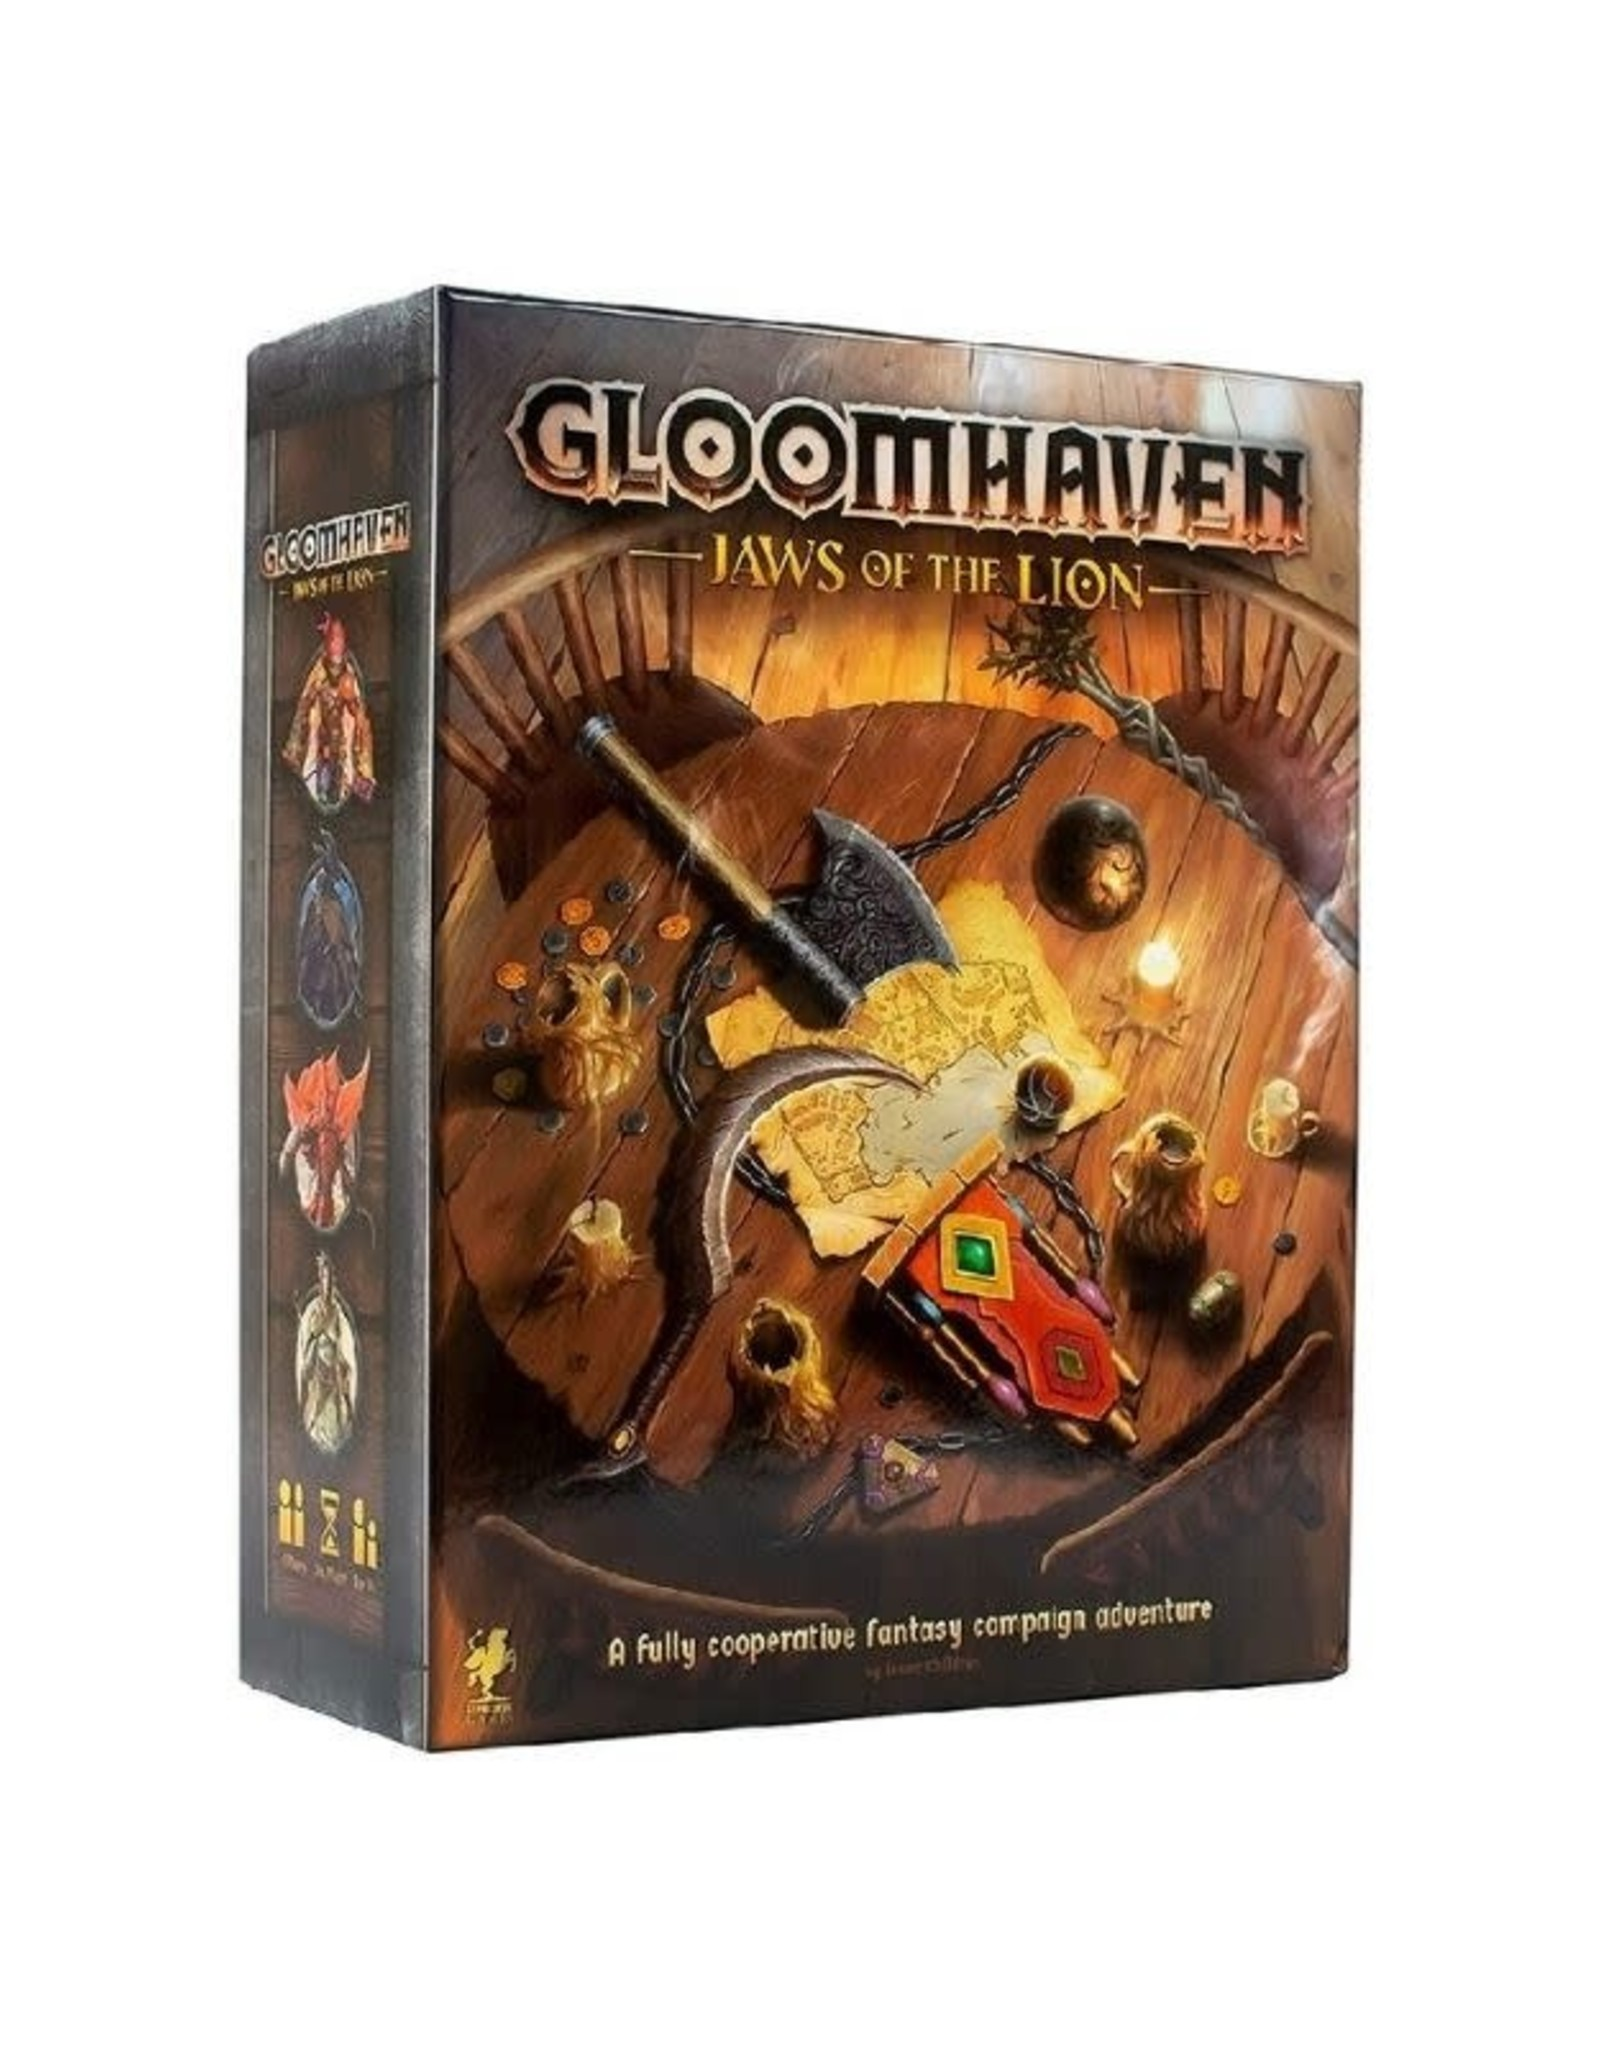 Gloomhaven (Jaws of the Lion)